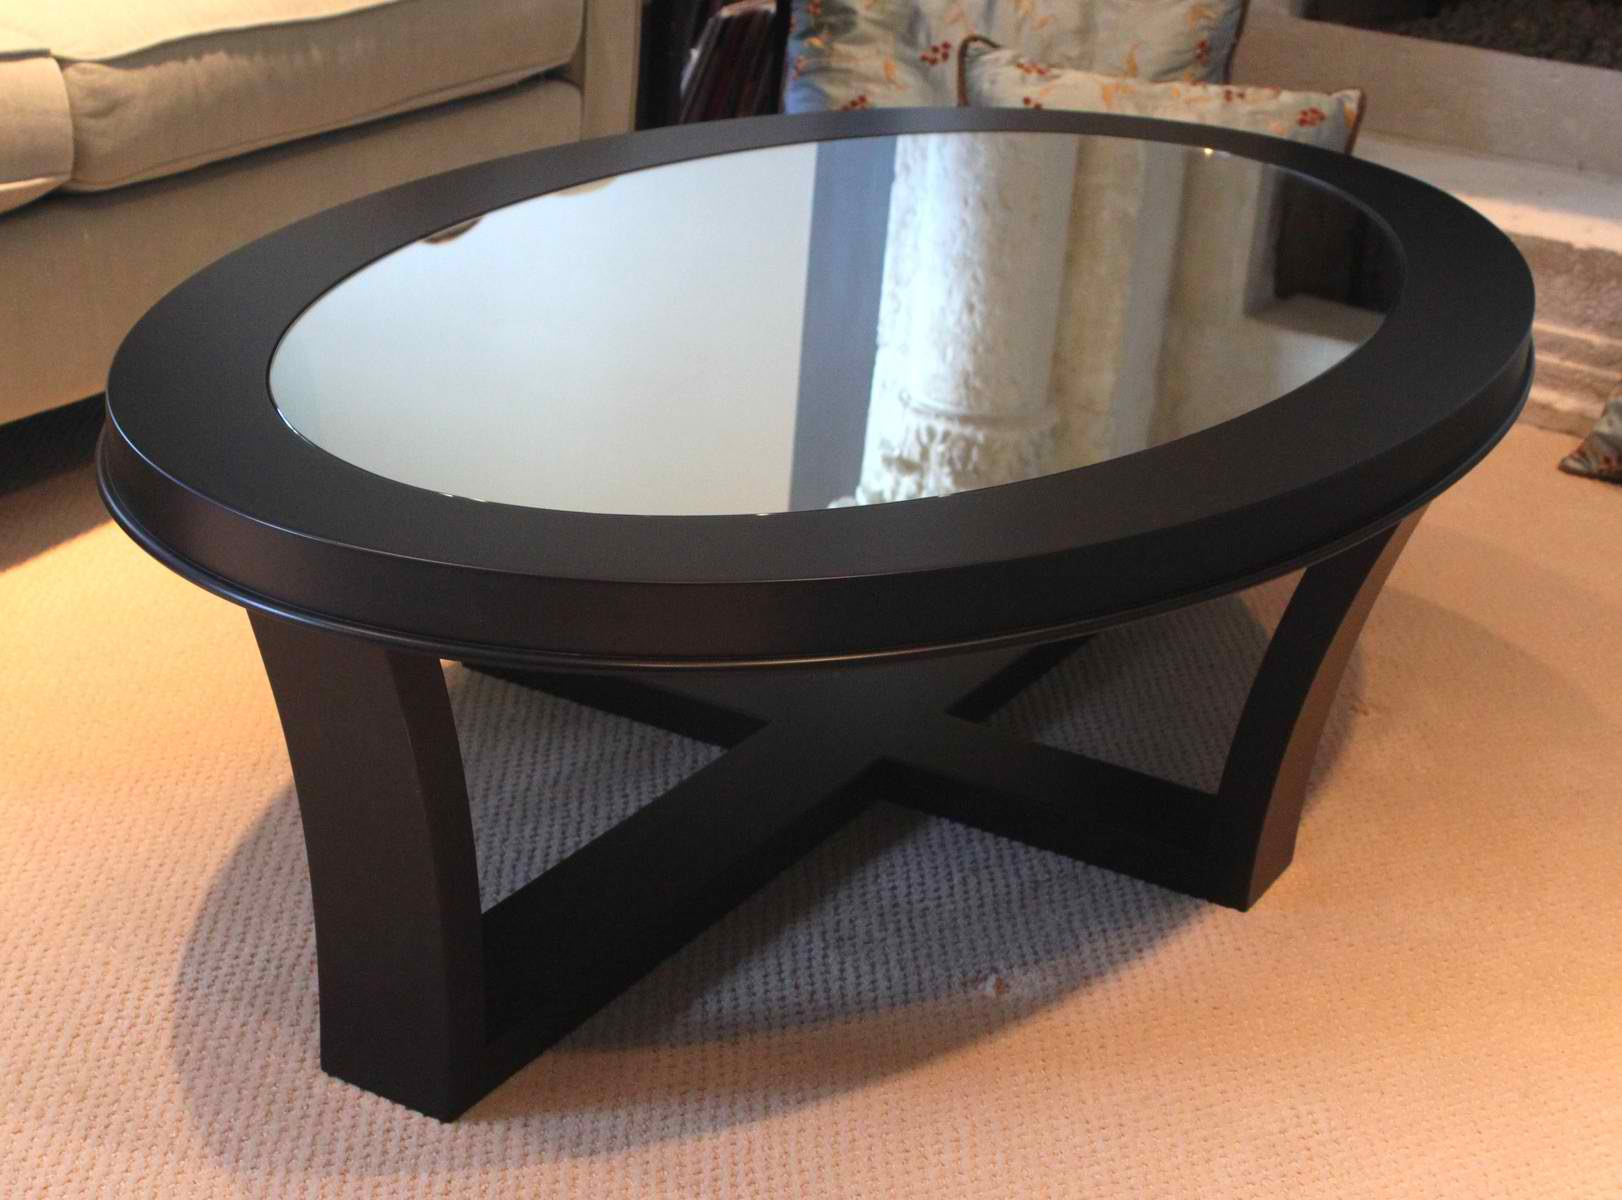 The Best Coffee Table Legs Modern Designs